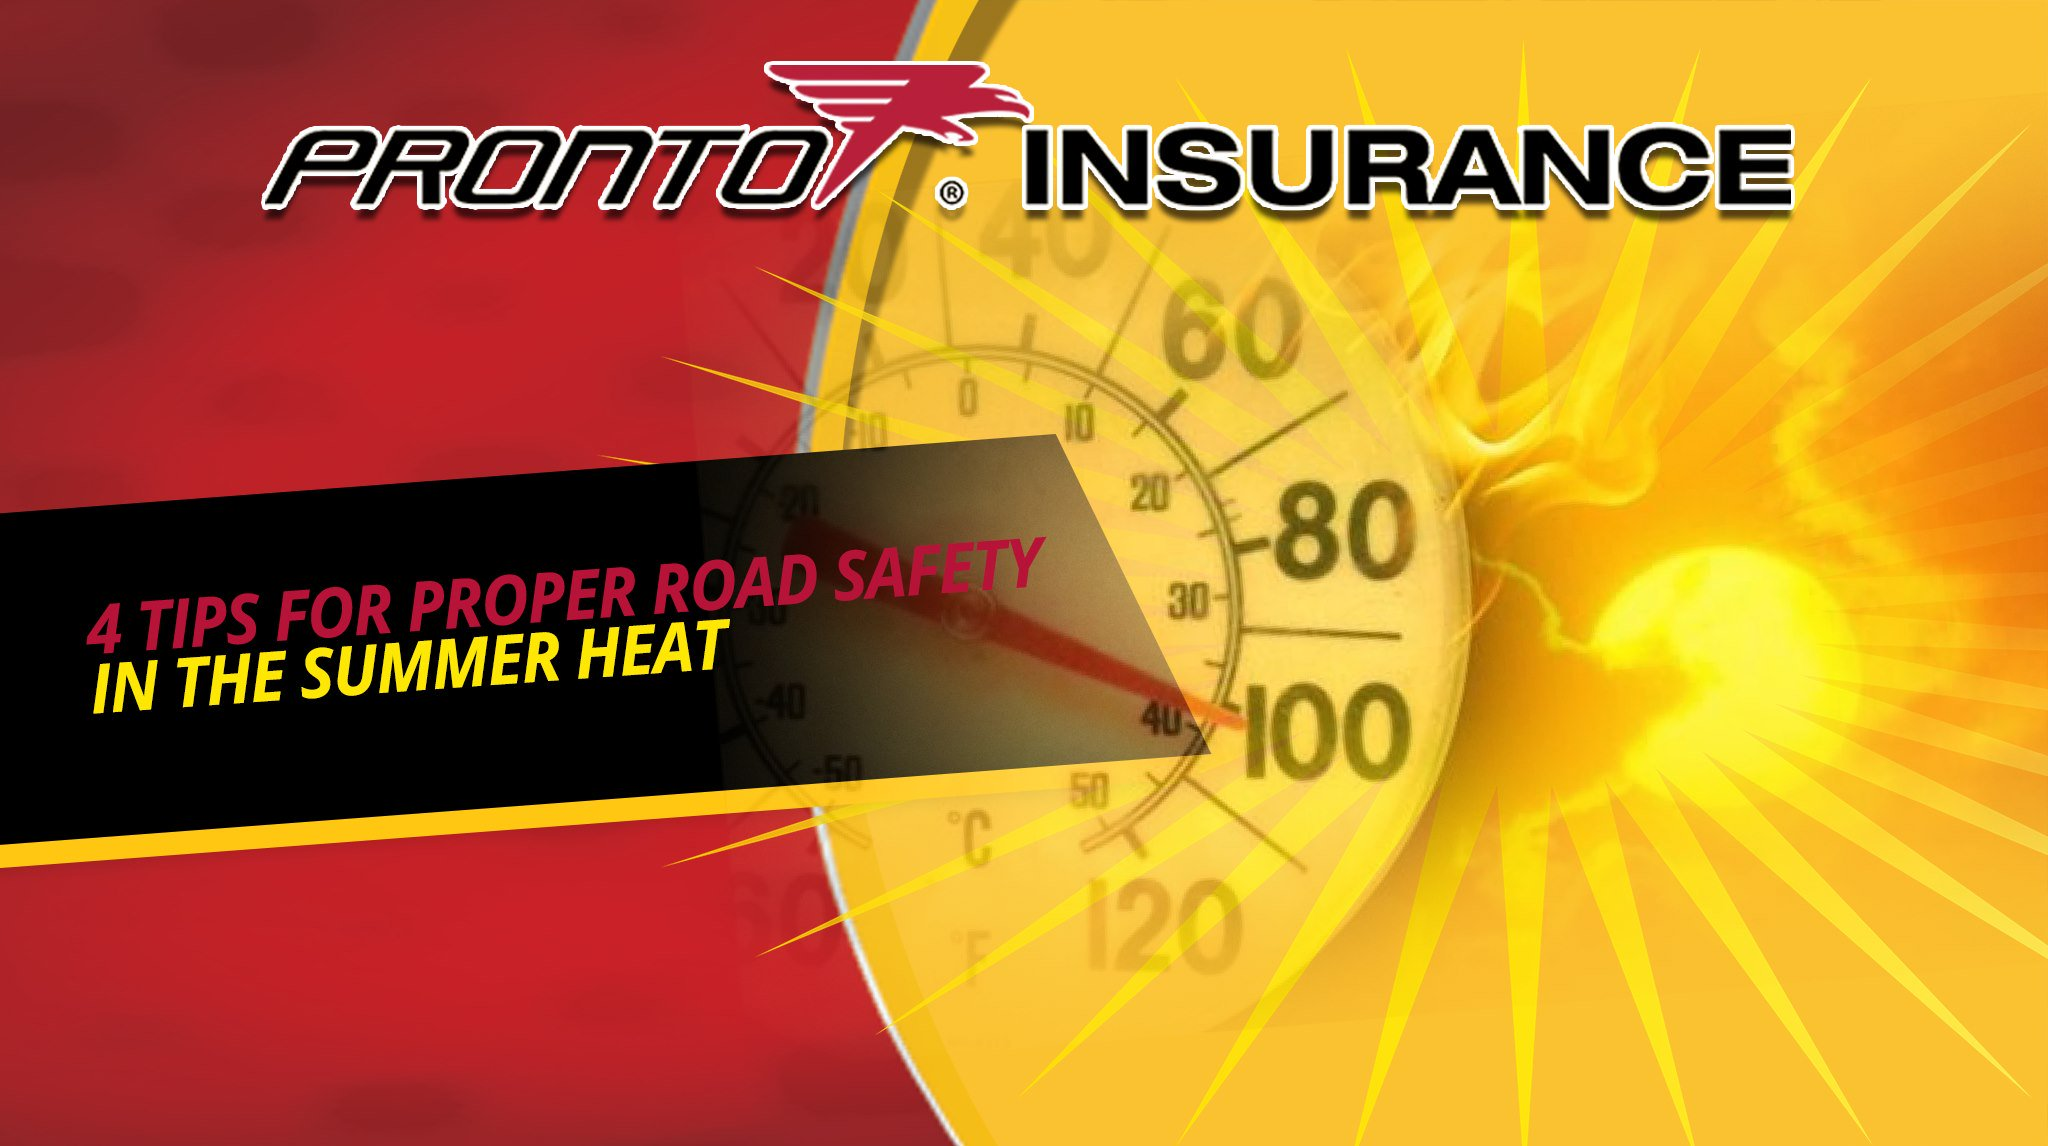 4 Tips for Proper Road Safety on Hot Days!